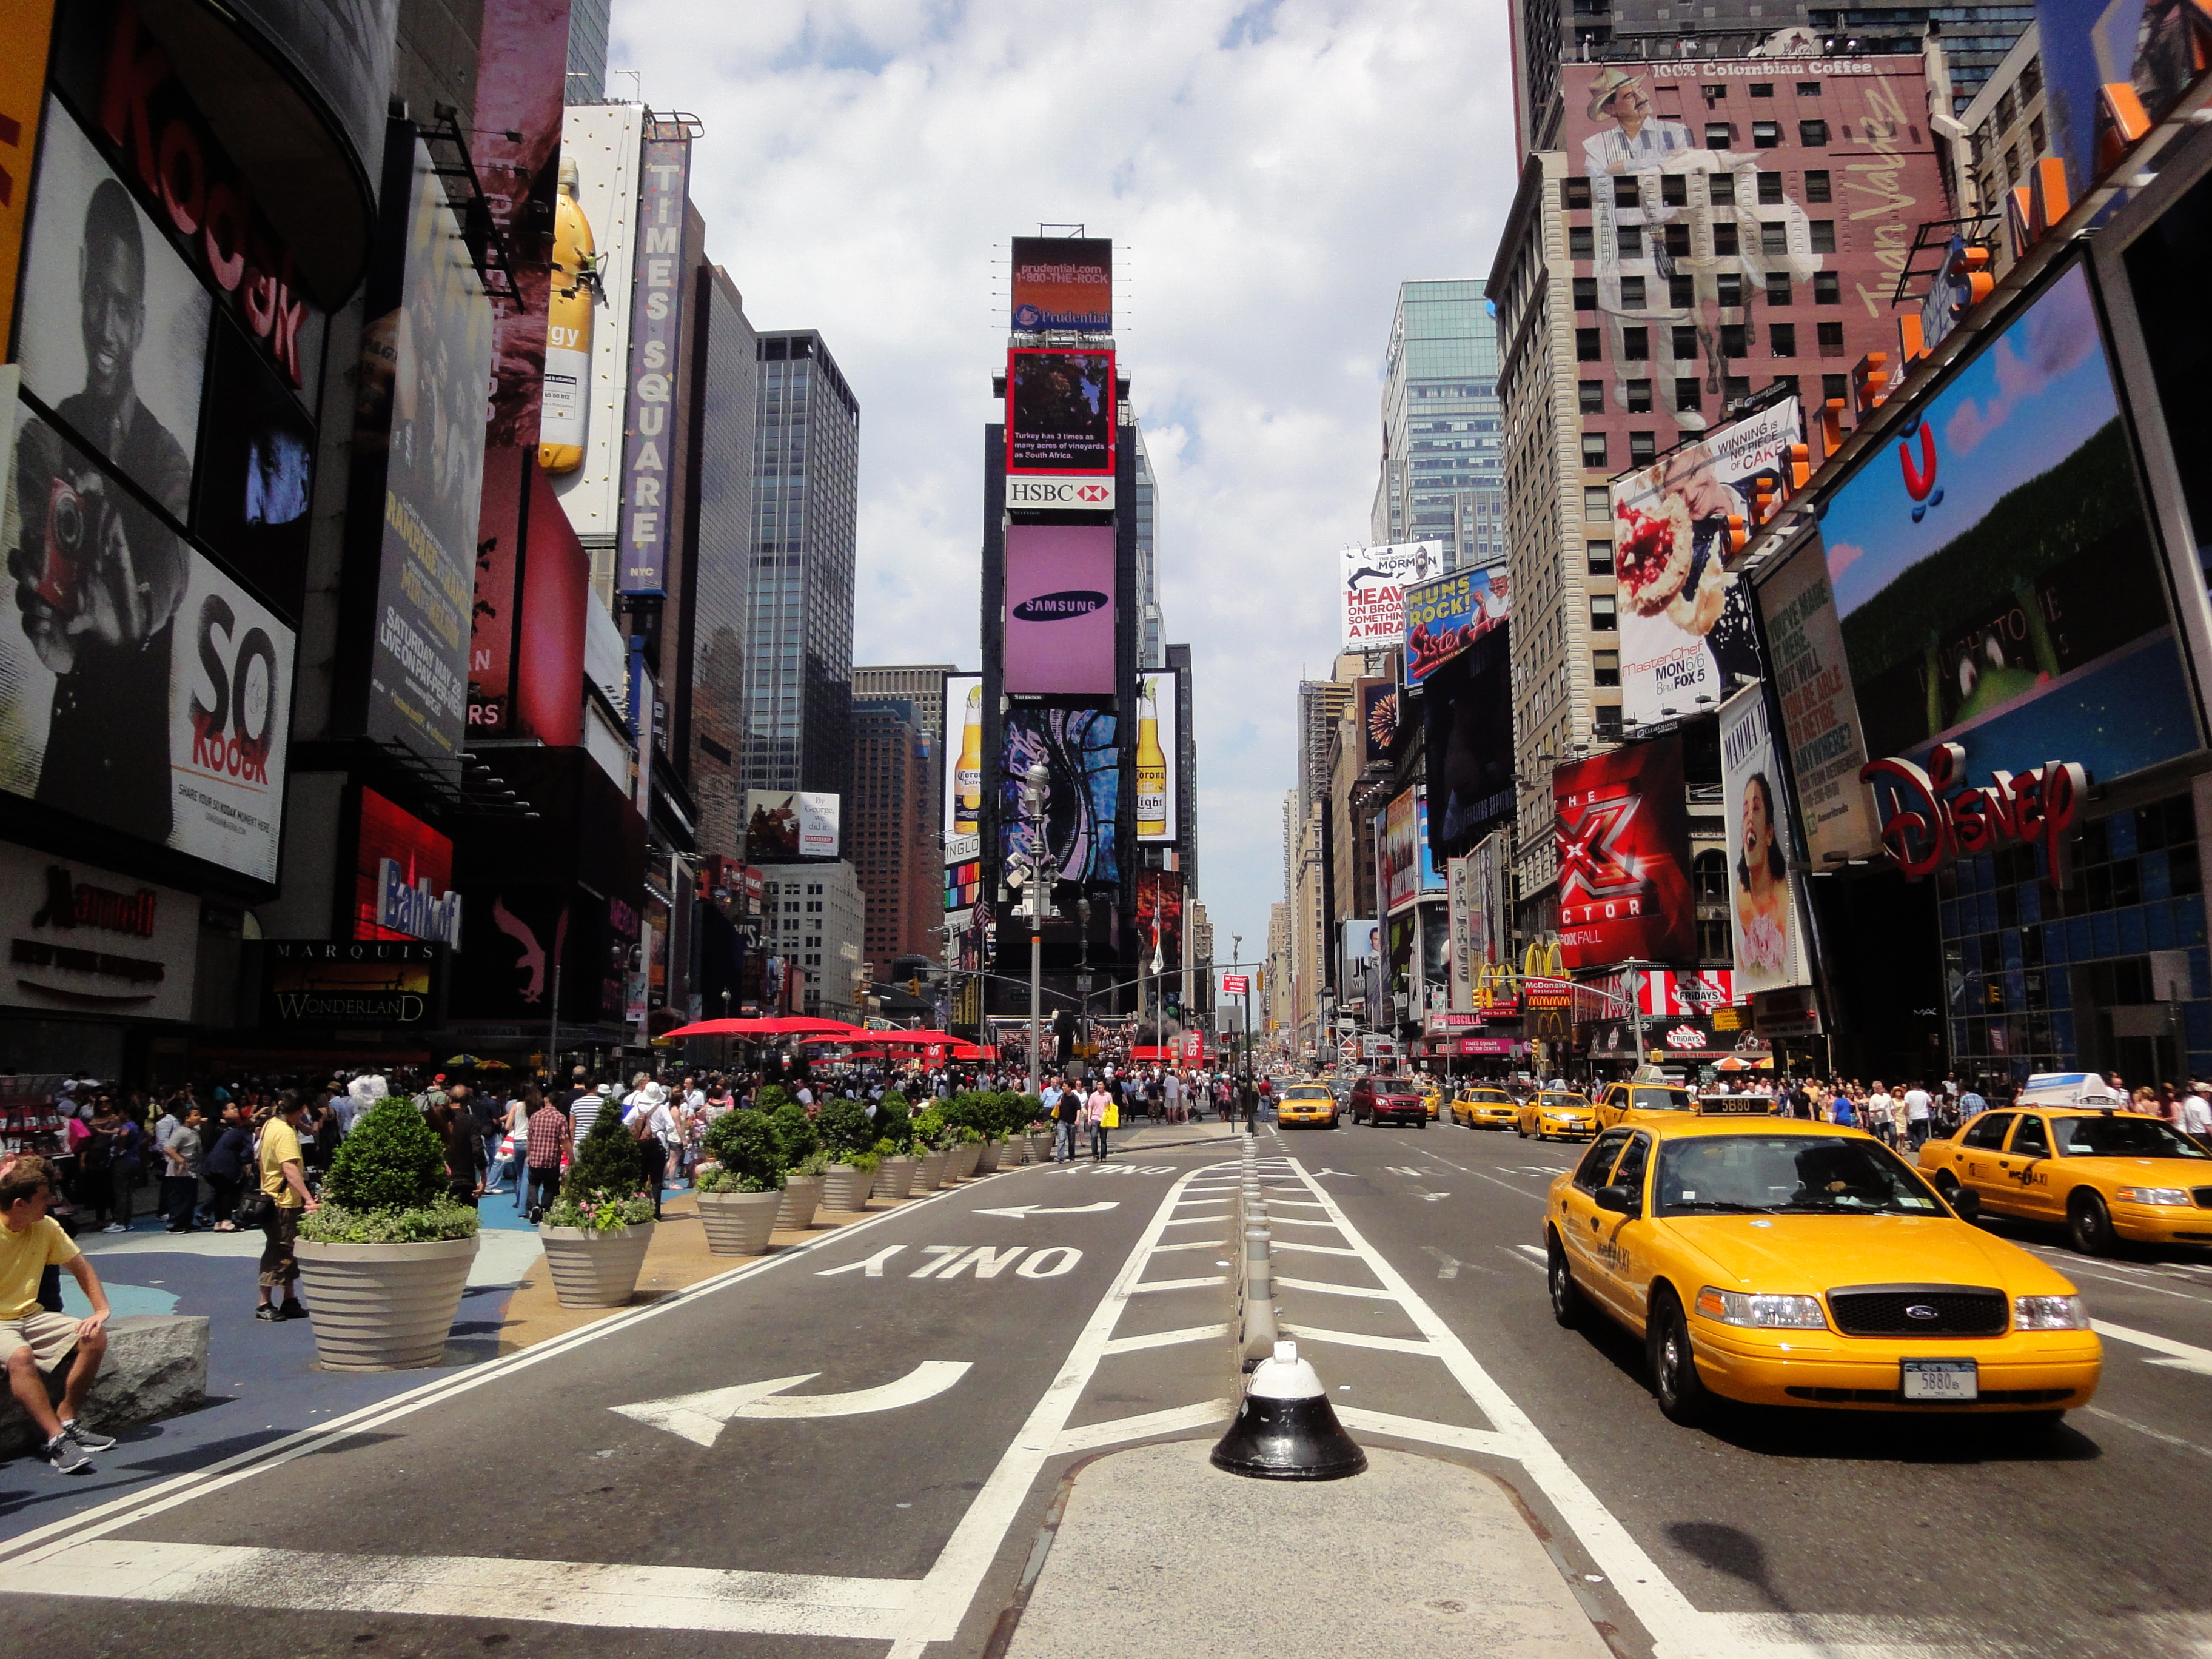 Times Square at daytime | Swiss Economist